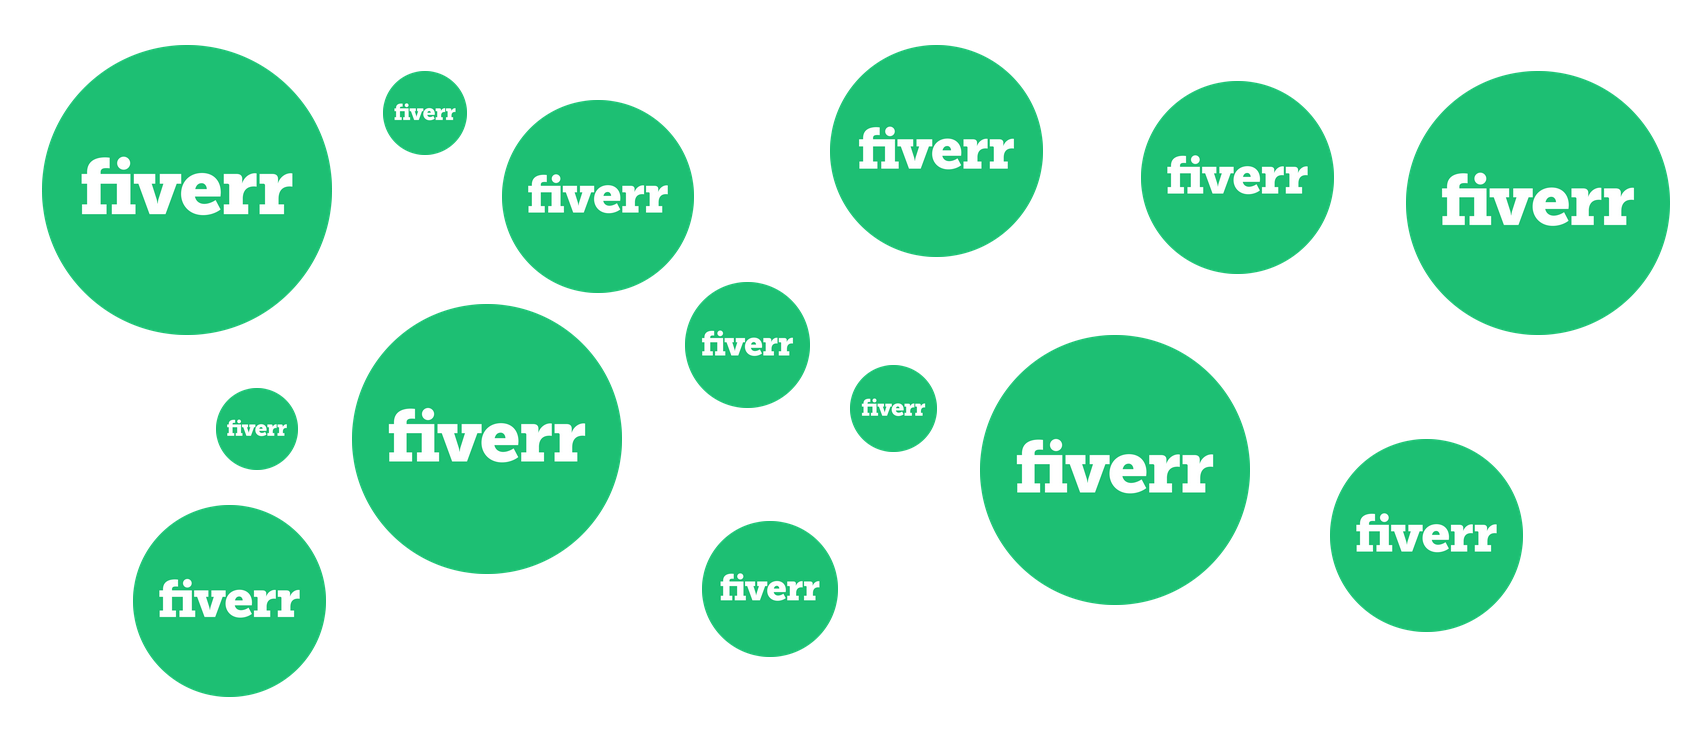 Can a New Seller Make Money on Fiverr in 2019? | by Casey Botticello |  Escaping The 9 to 5 | Medium